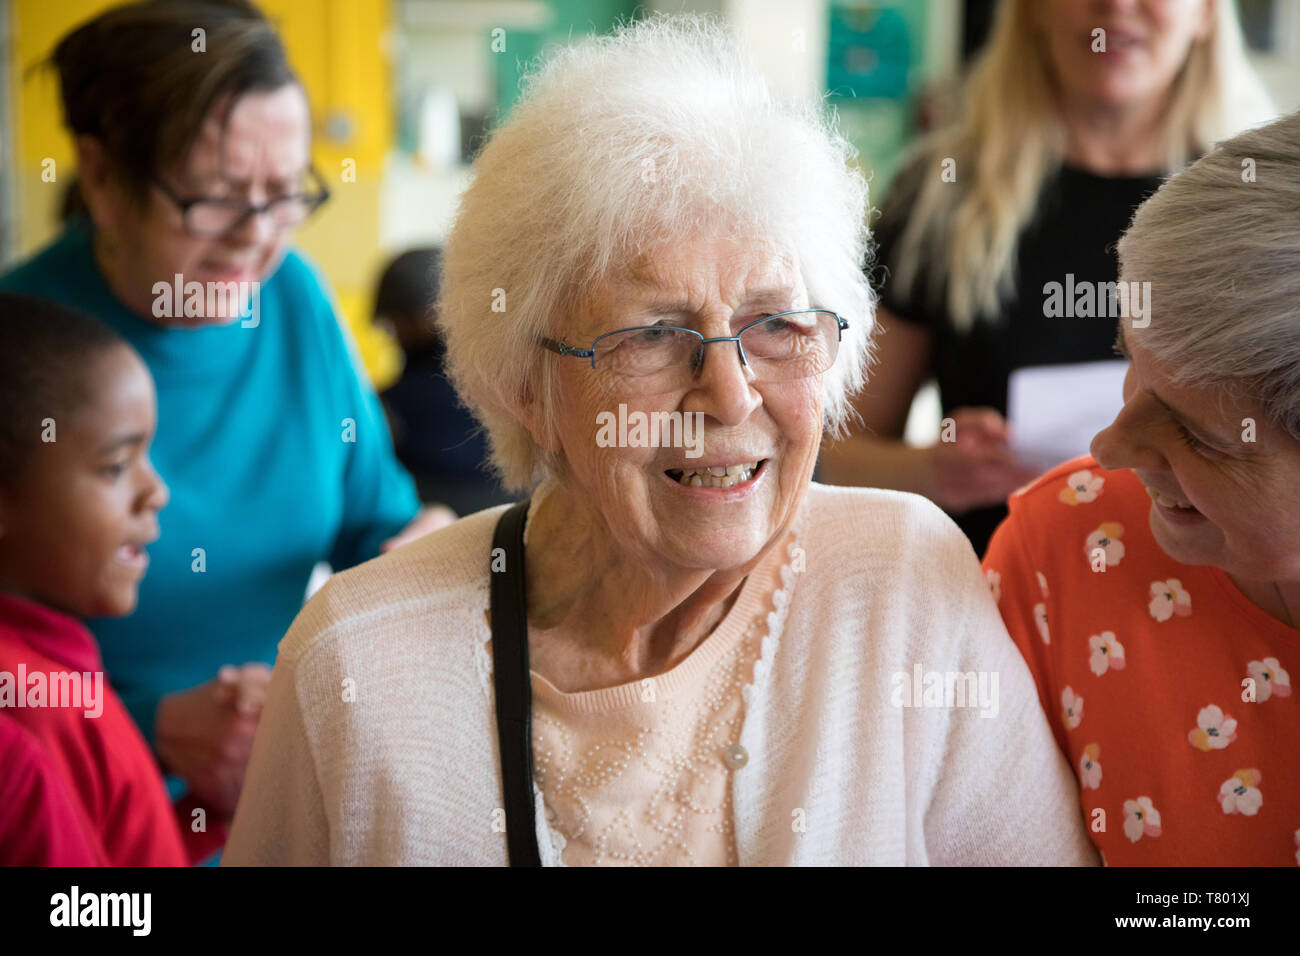 Elderly woman in a care home looking happy and positive, standing next to a carer on her left, with a school boy in background. - Stock Image